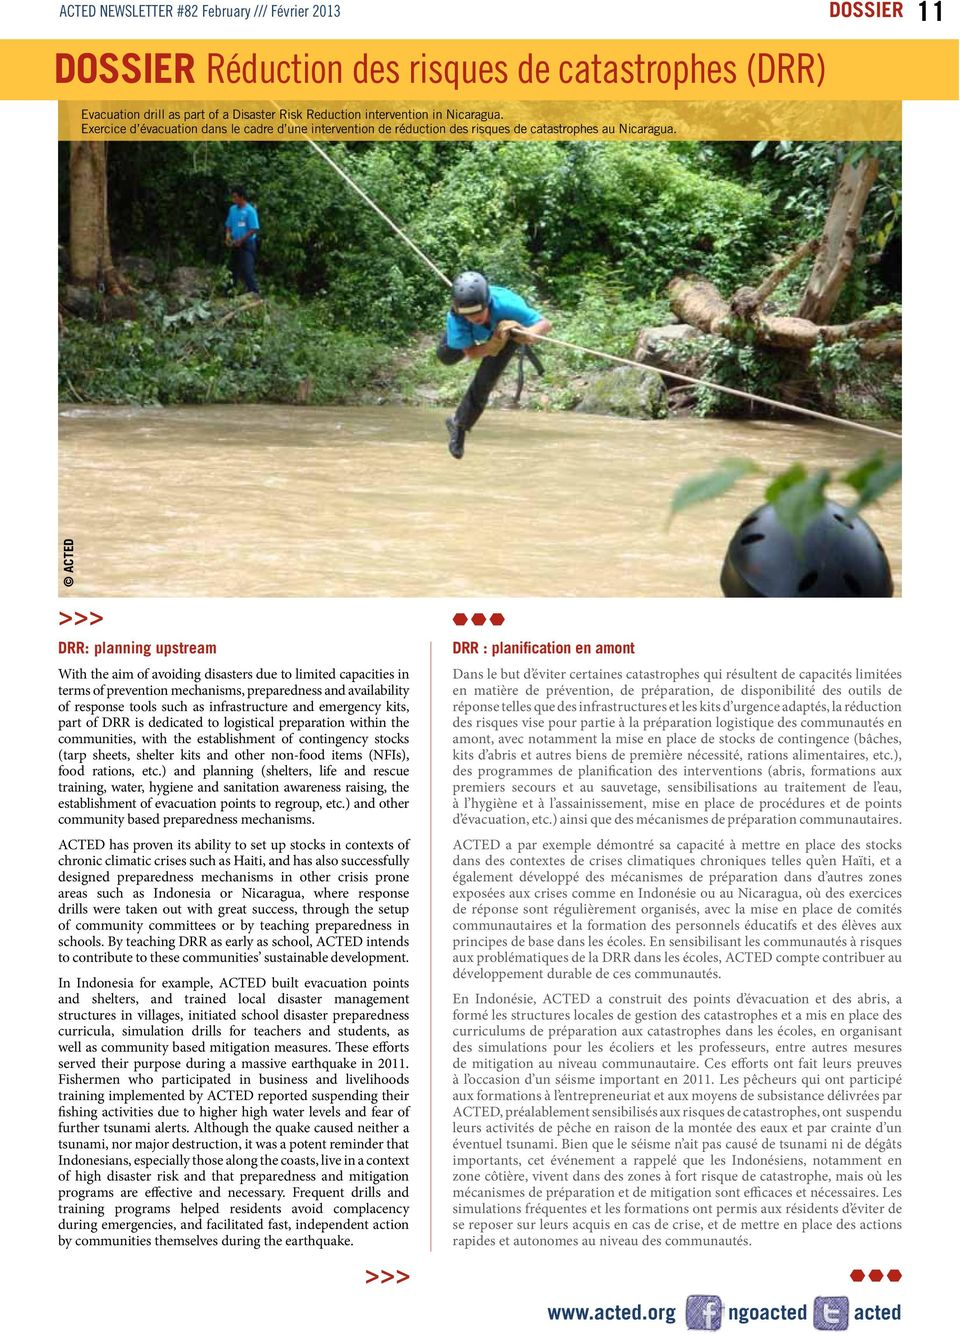 ACTED DRR: planning upstream With the aim of avoiding disasters due to limited capacities in terms of prevention mechanisms, preparedness and availability of response tools such as infrastructure and